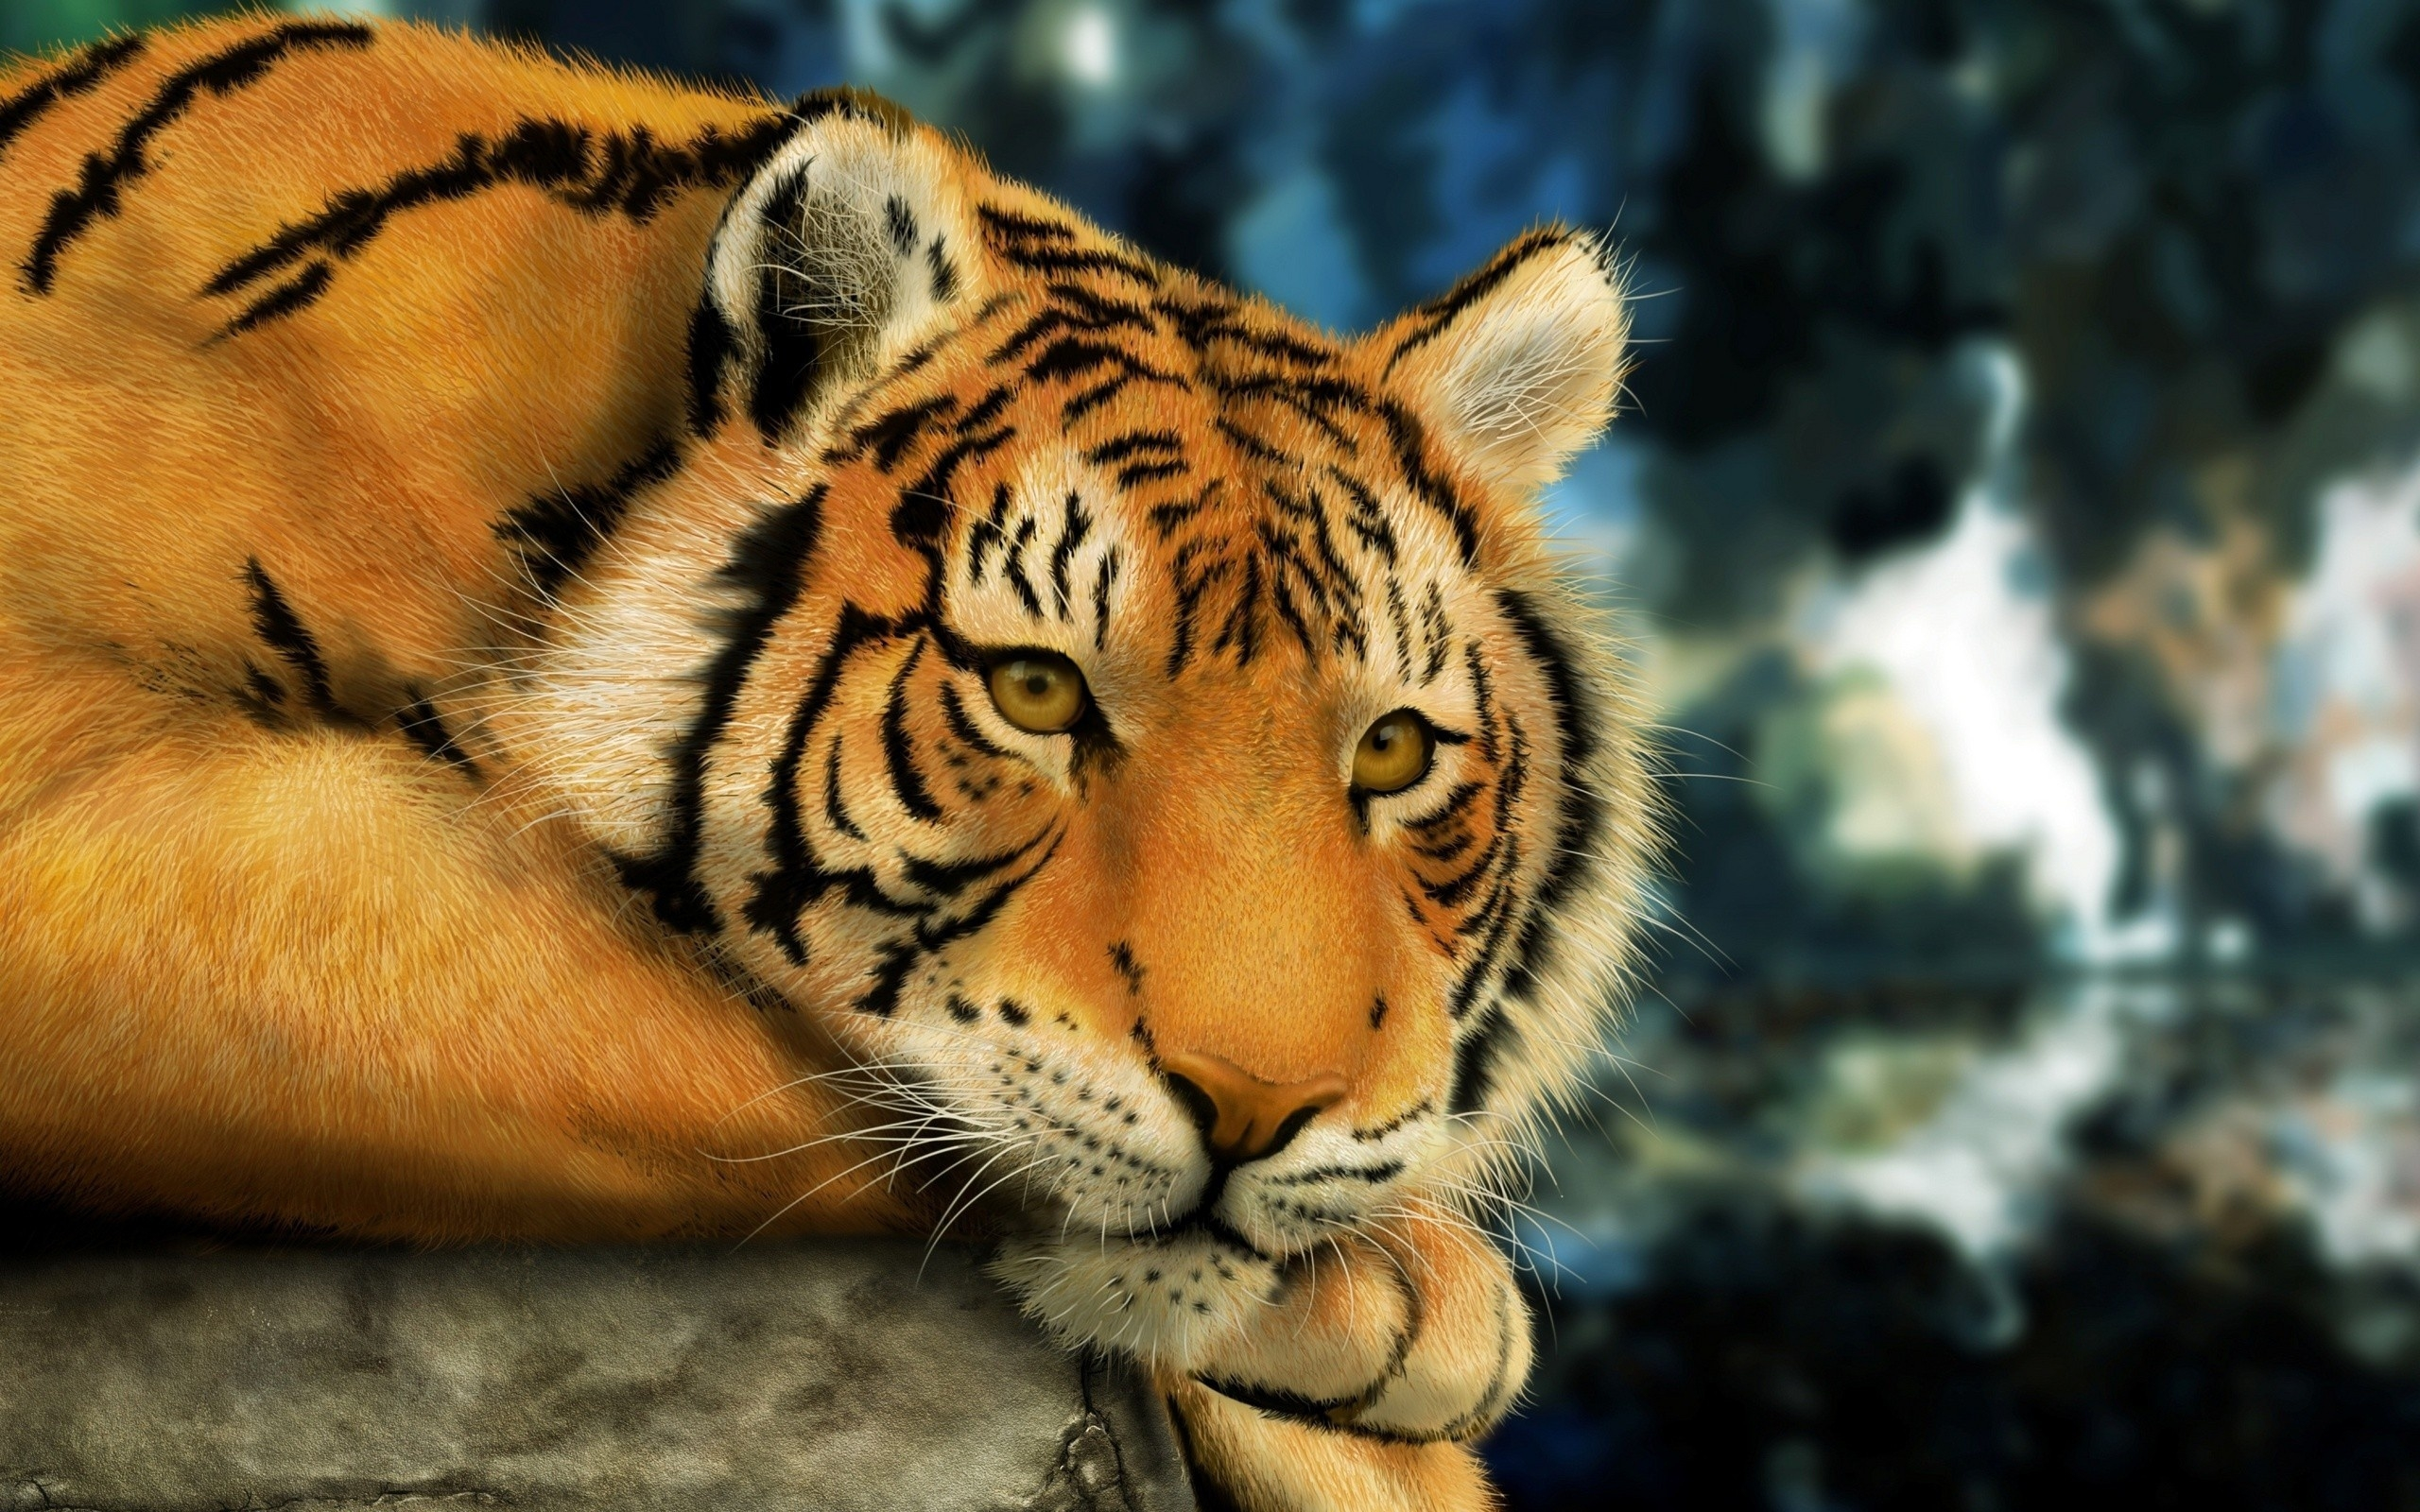 37591 download wallpaper Animals, Tigers screensavers and pictures for free